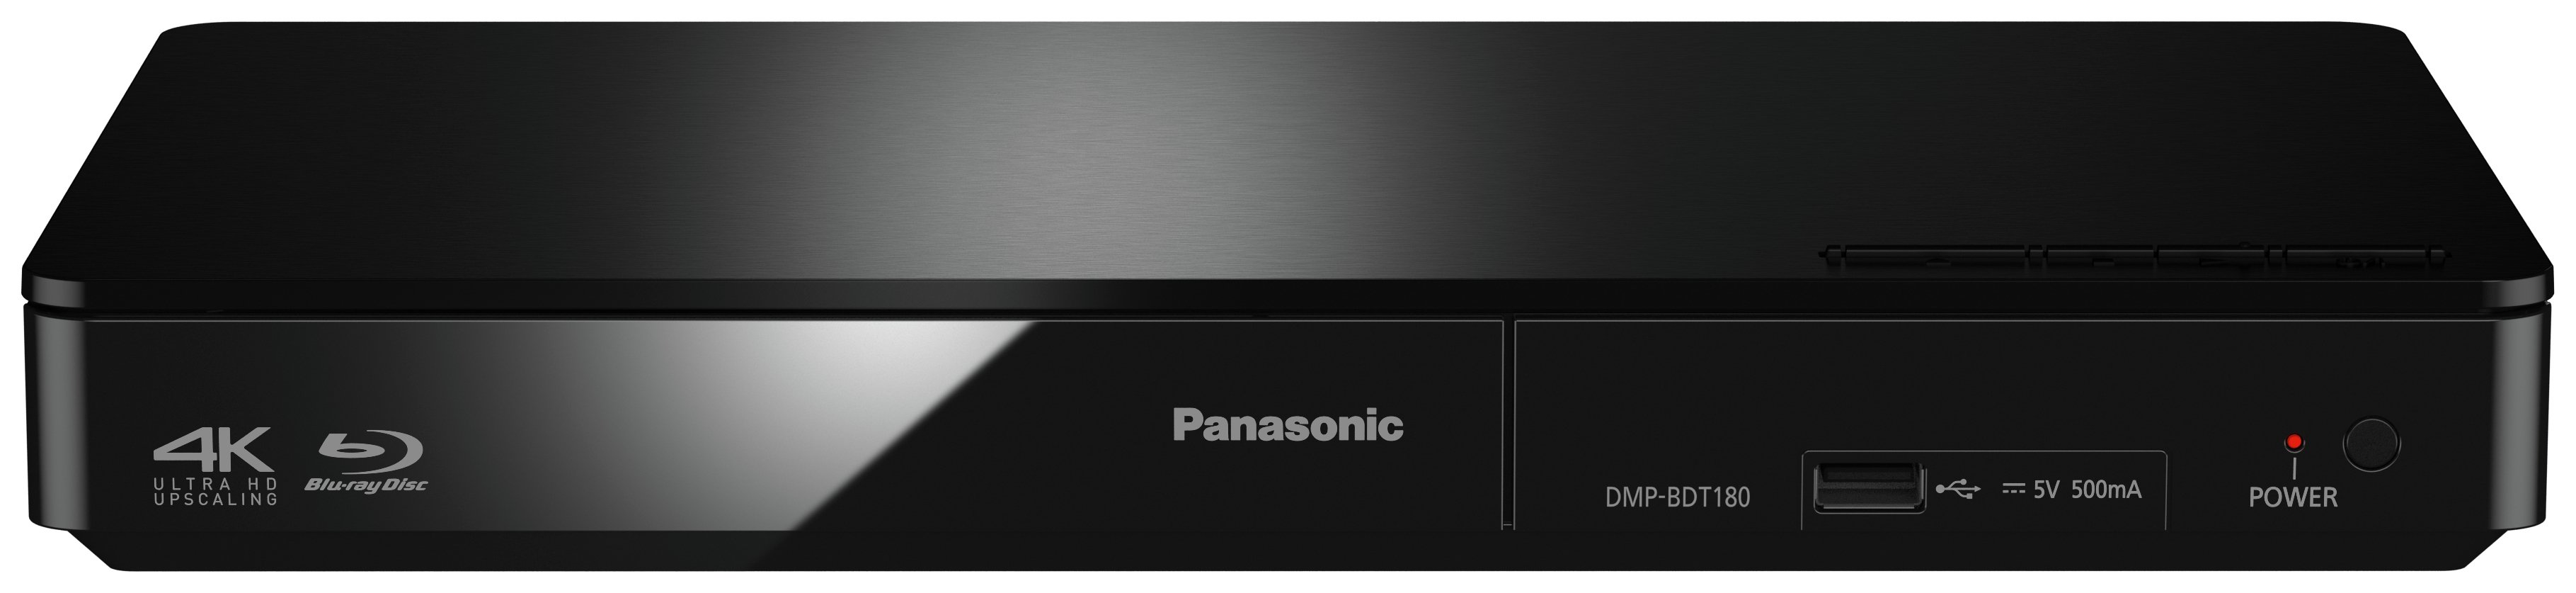 Image of Panasonic - BDT180 - Smart 4K Ready 3D Blu-ray Player.